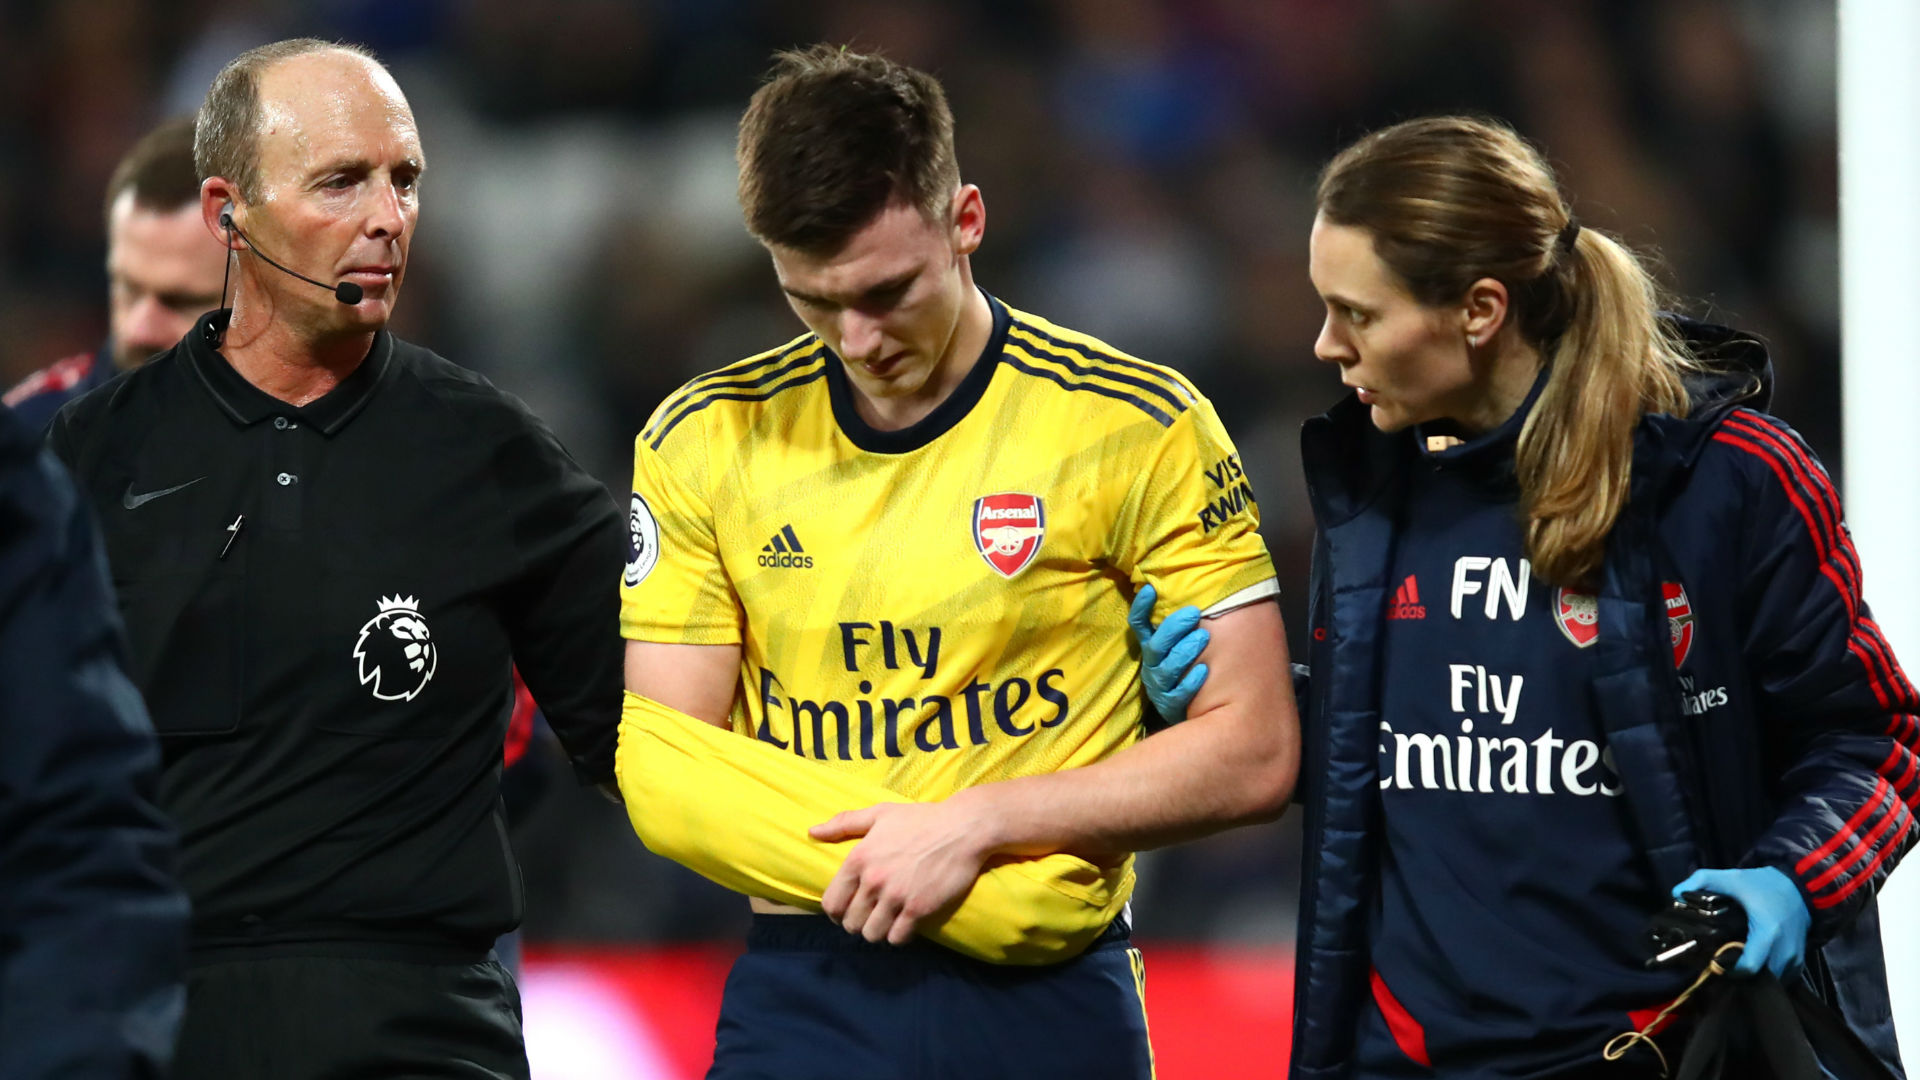 Injury blow for Arsenal as Tierney forced off against West Ham